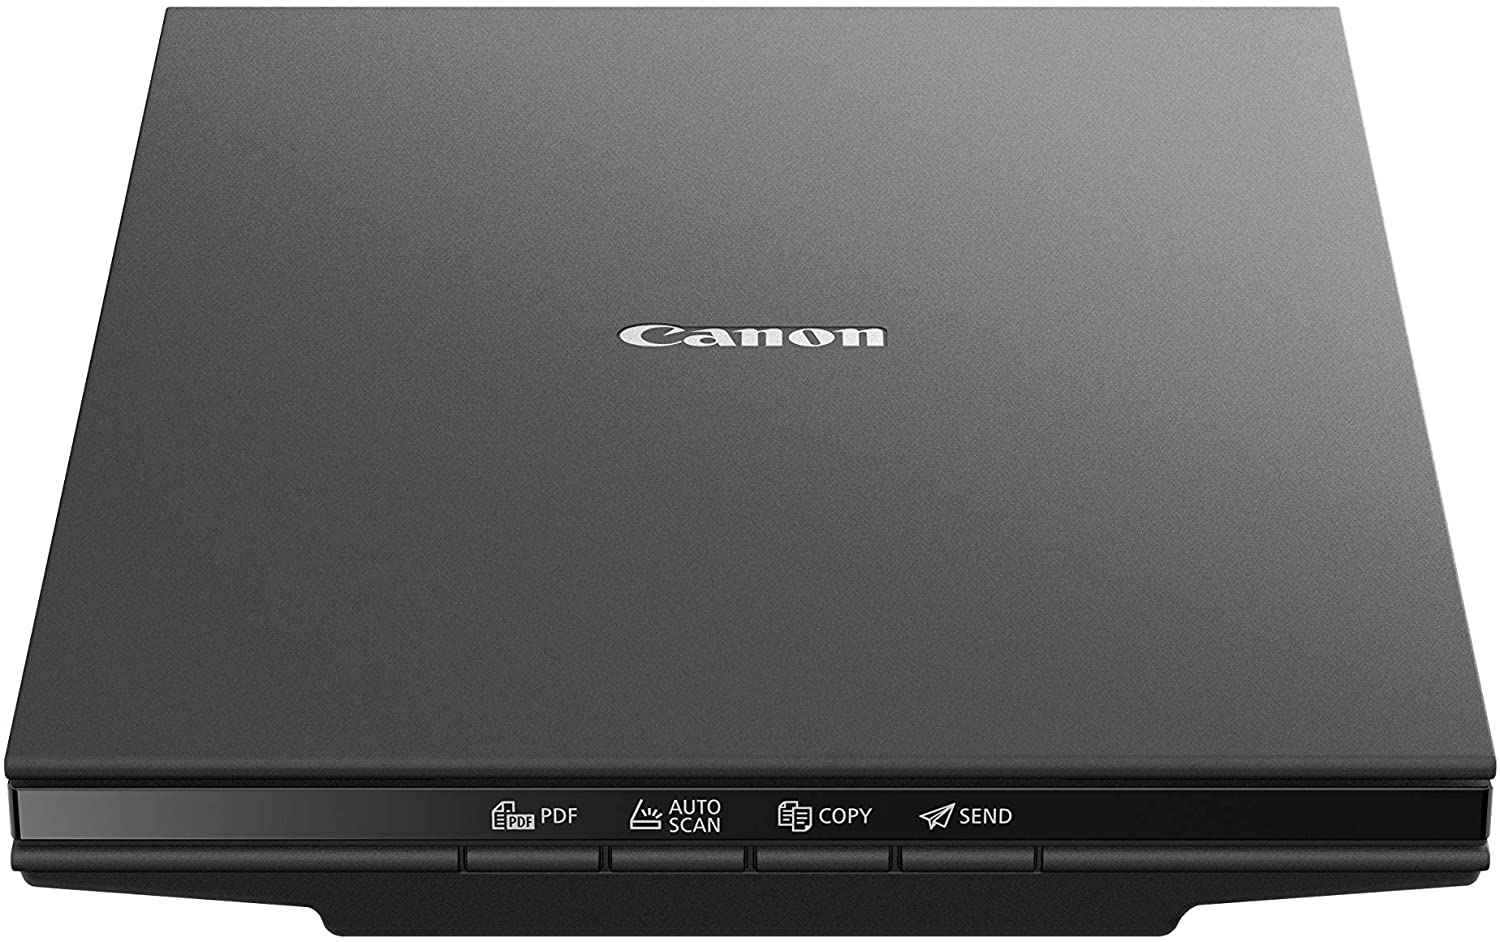 Canon LiDE 300 Colour Flatbed Scanner